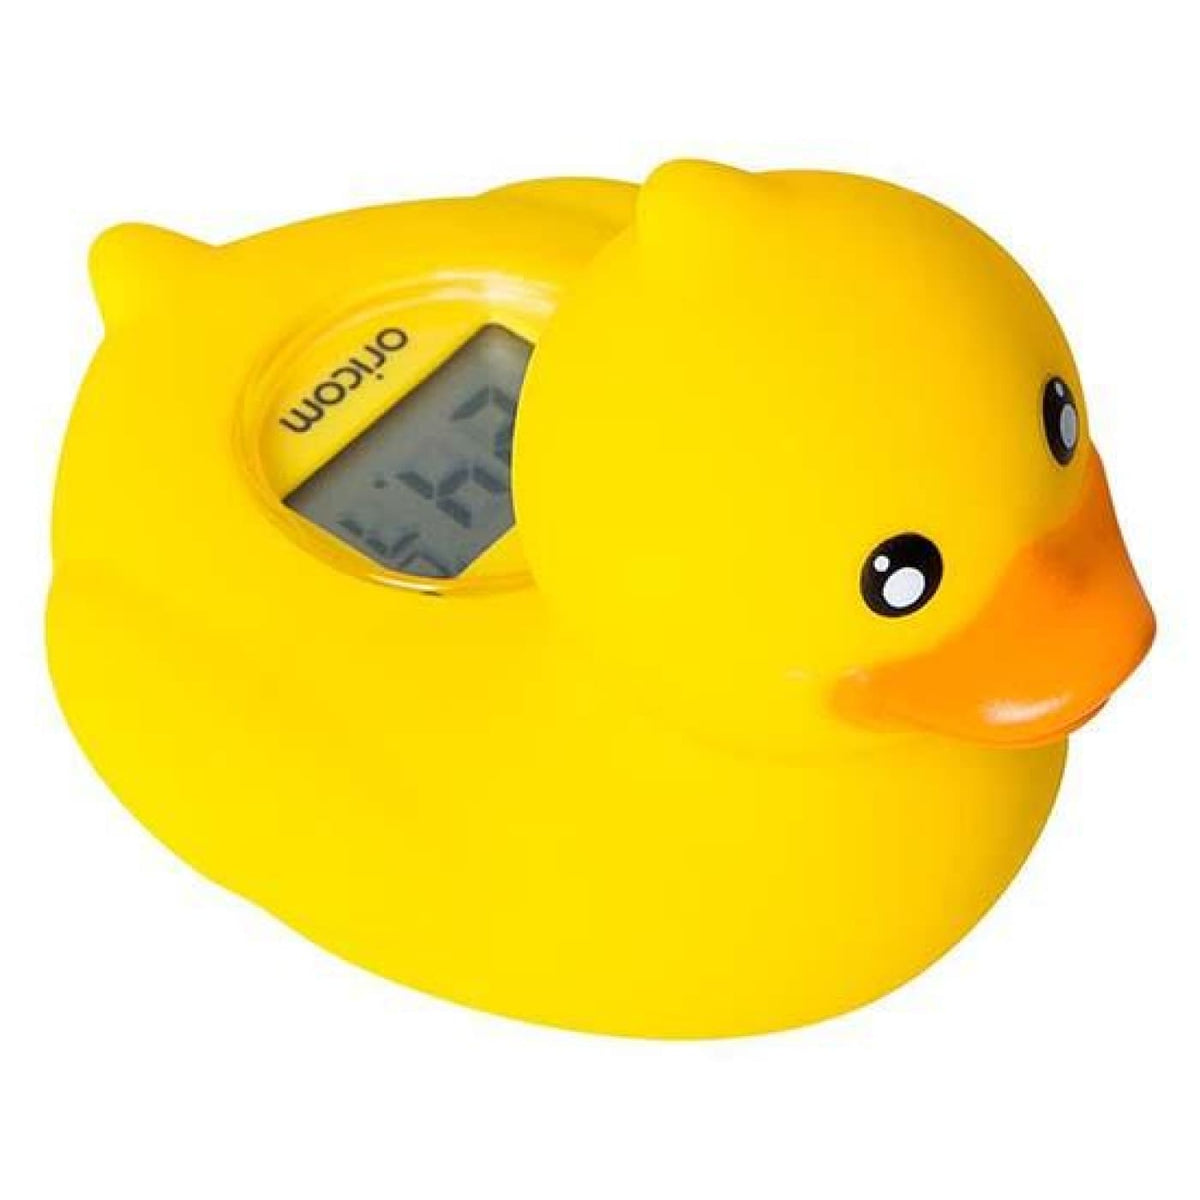 Oricom Bath Thermometer - Duck - HEALTH & HOME SAFETY - THERMOMETERS/MEDICINAL